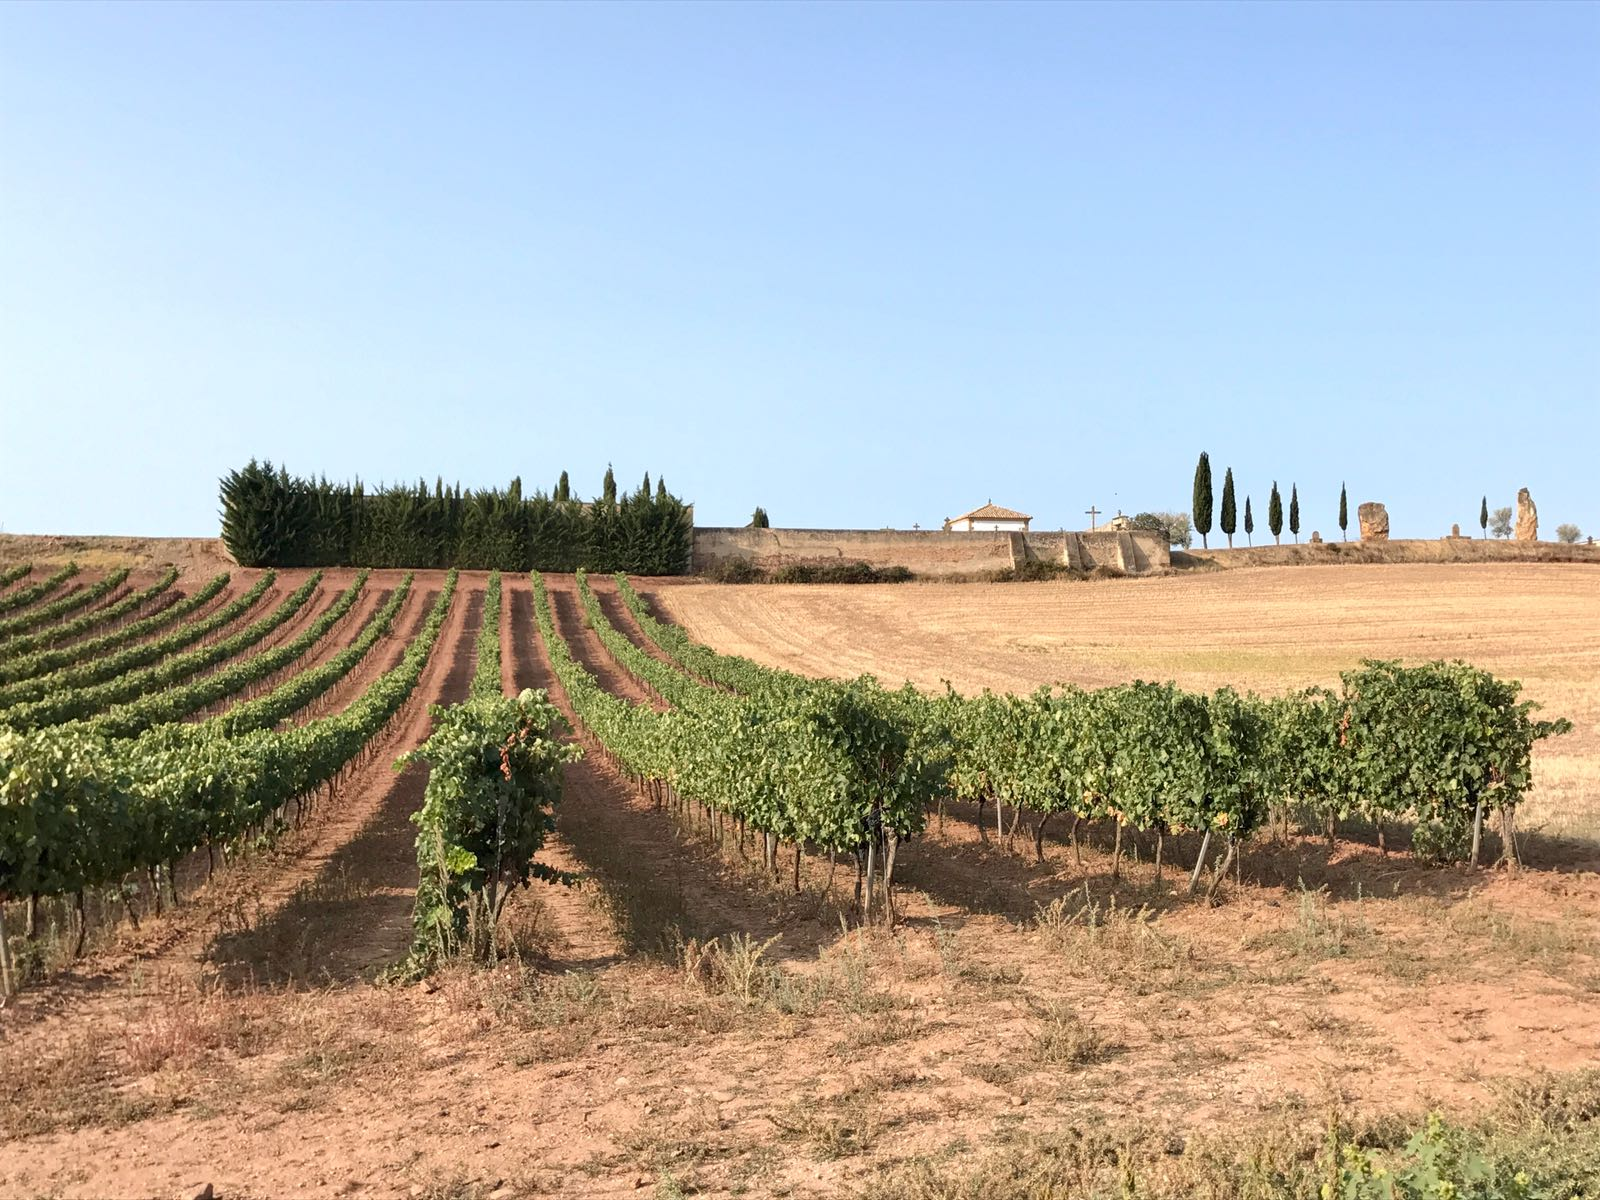 Vineyards outside the town of Cirauqui